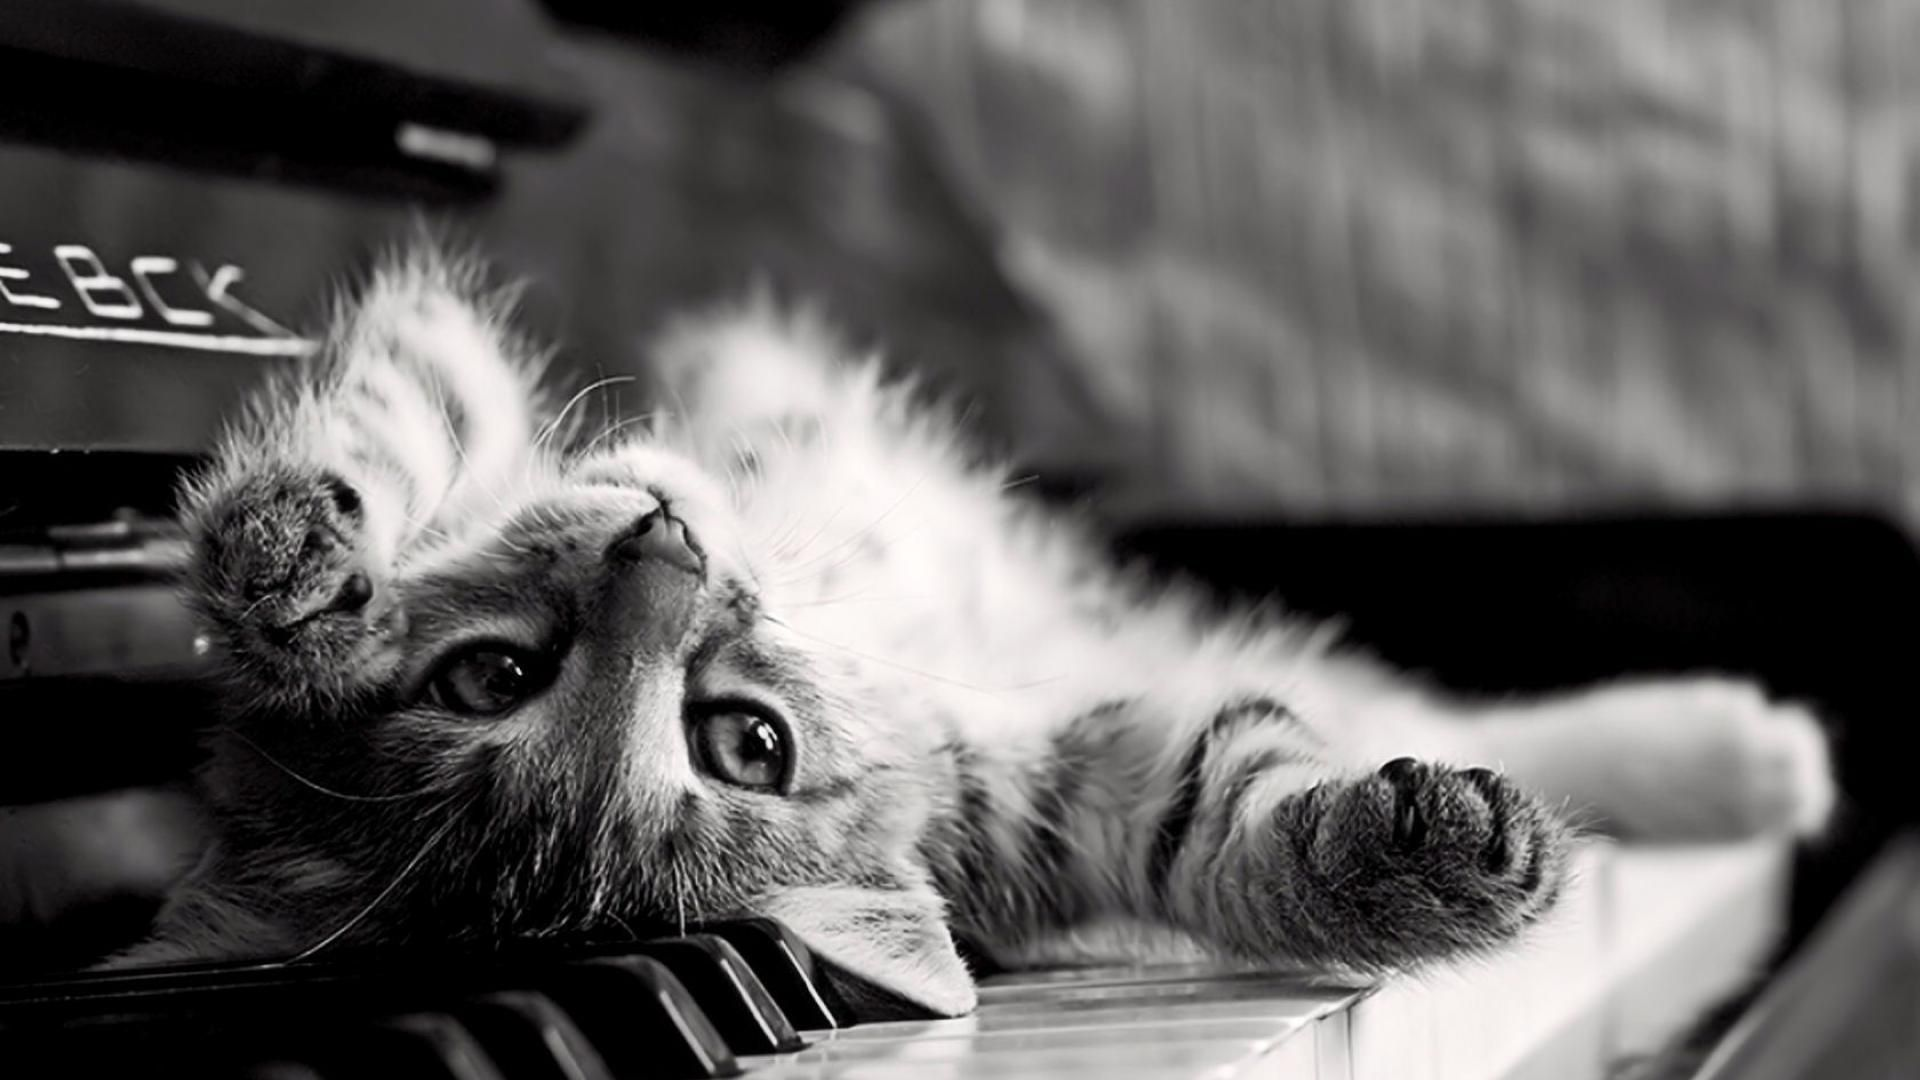 Cute Black And White HD 1080 wallpaper